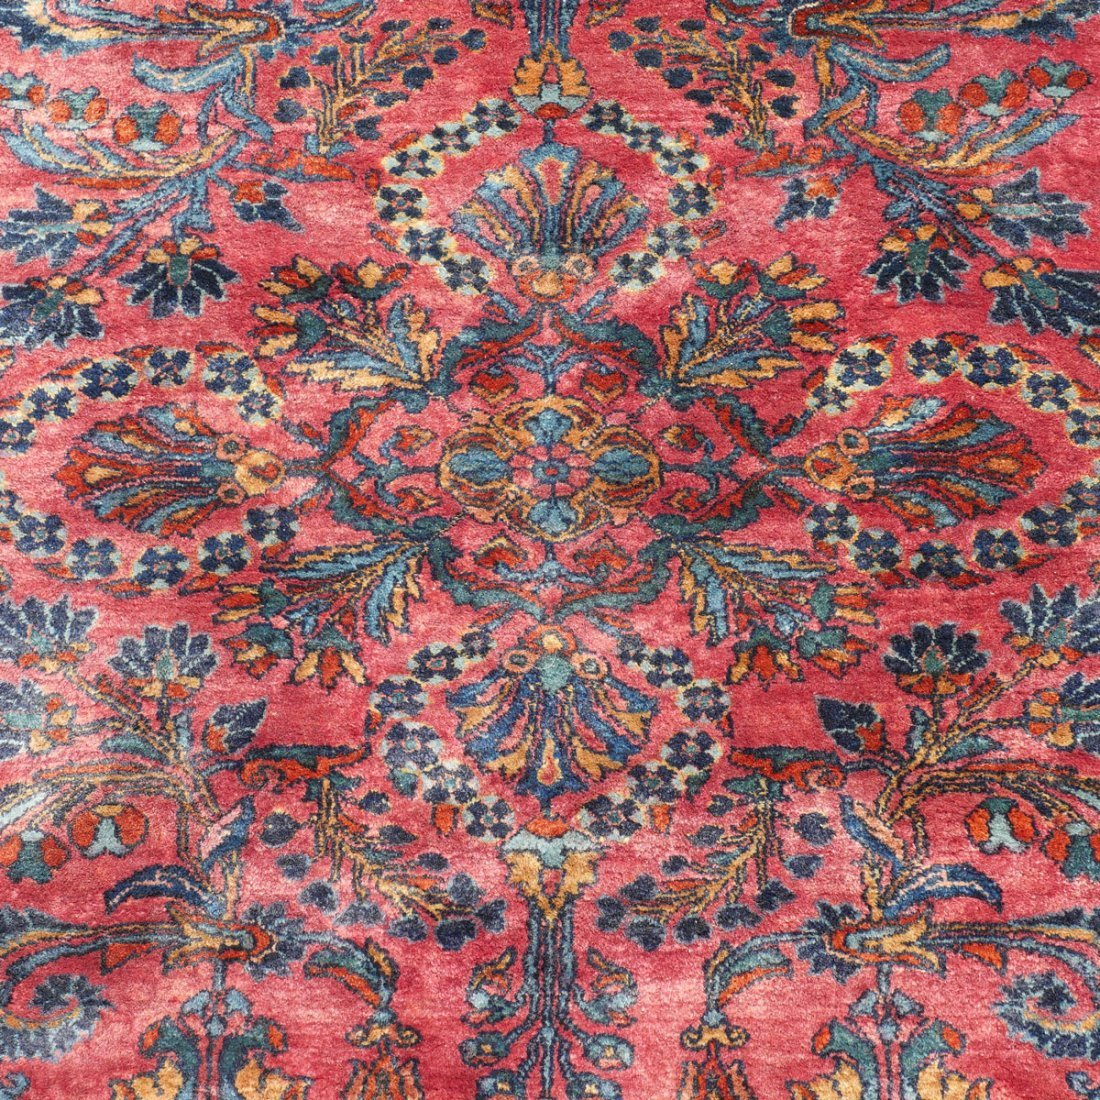 "SEMI-ANTIQUE PERSIAN FINELY HK WOOL RUG, 5'4"" X 6' - 2"